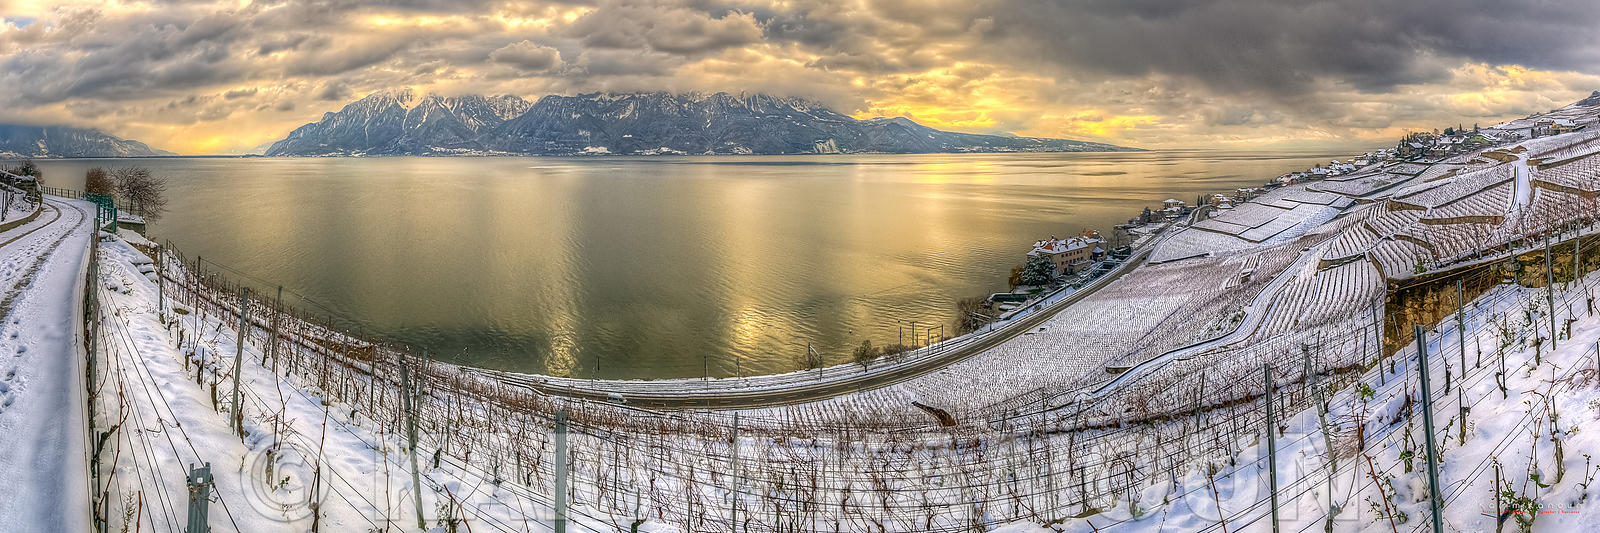 Panorama - Snowy white vineyards with the Alps and Leman lake